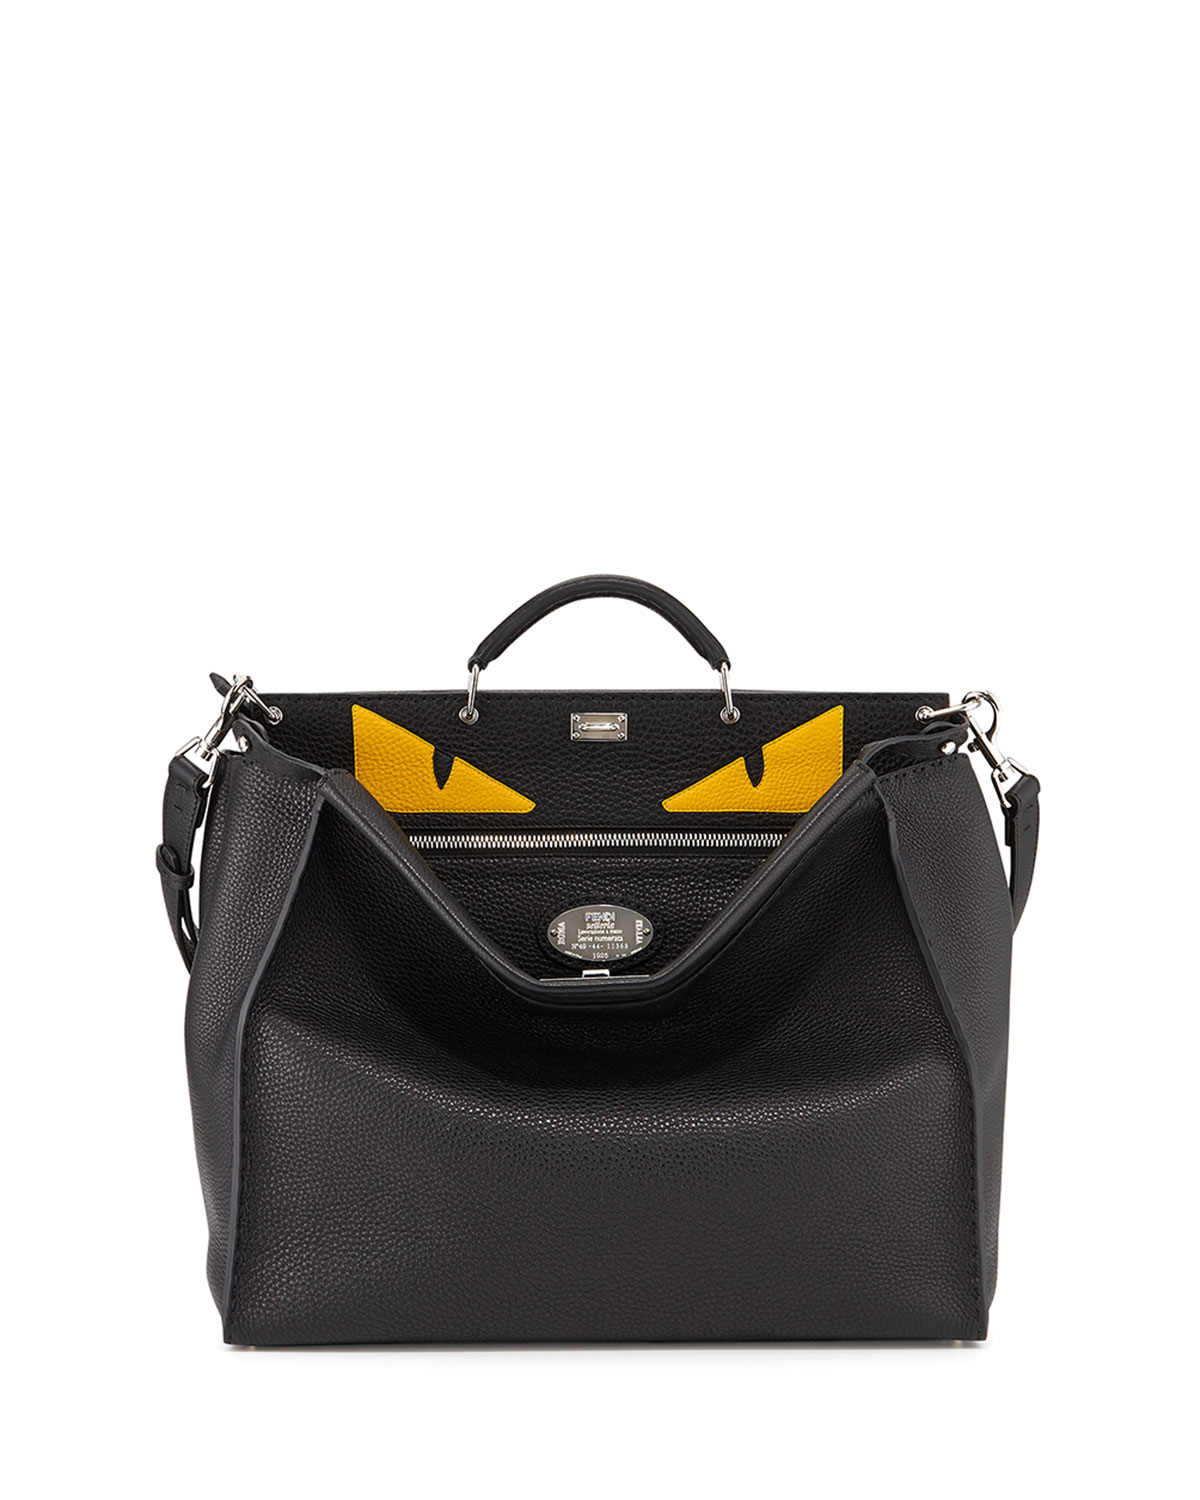 Fendi Men s Monster Eyes Peekaboo Bag 37299d01493c0